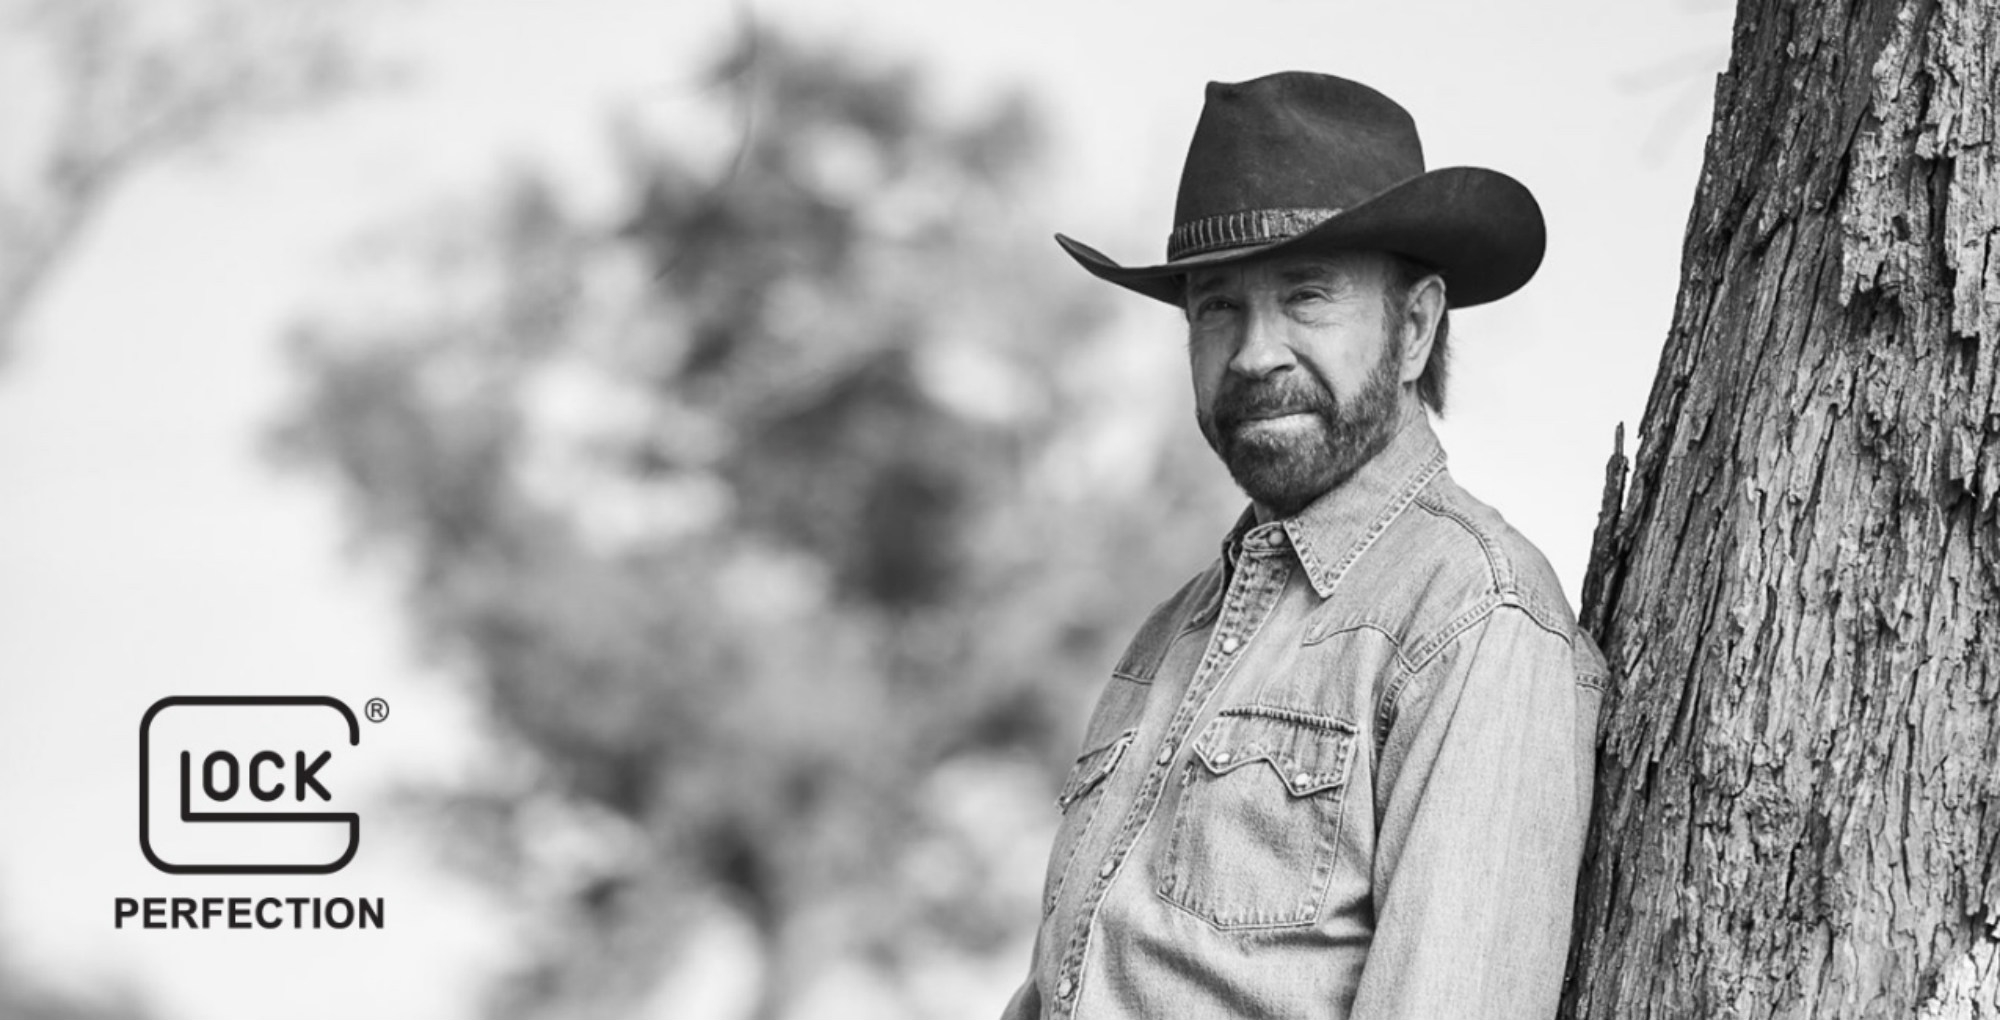 Chuck Norris is the new GLOCK's spokesperson